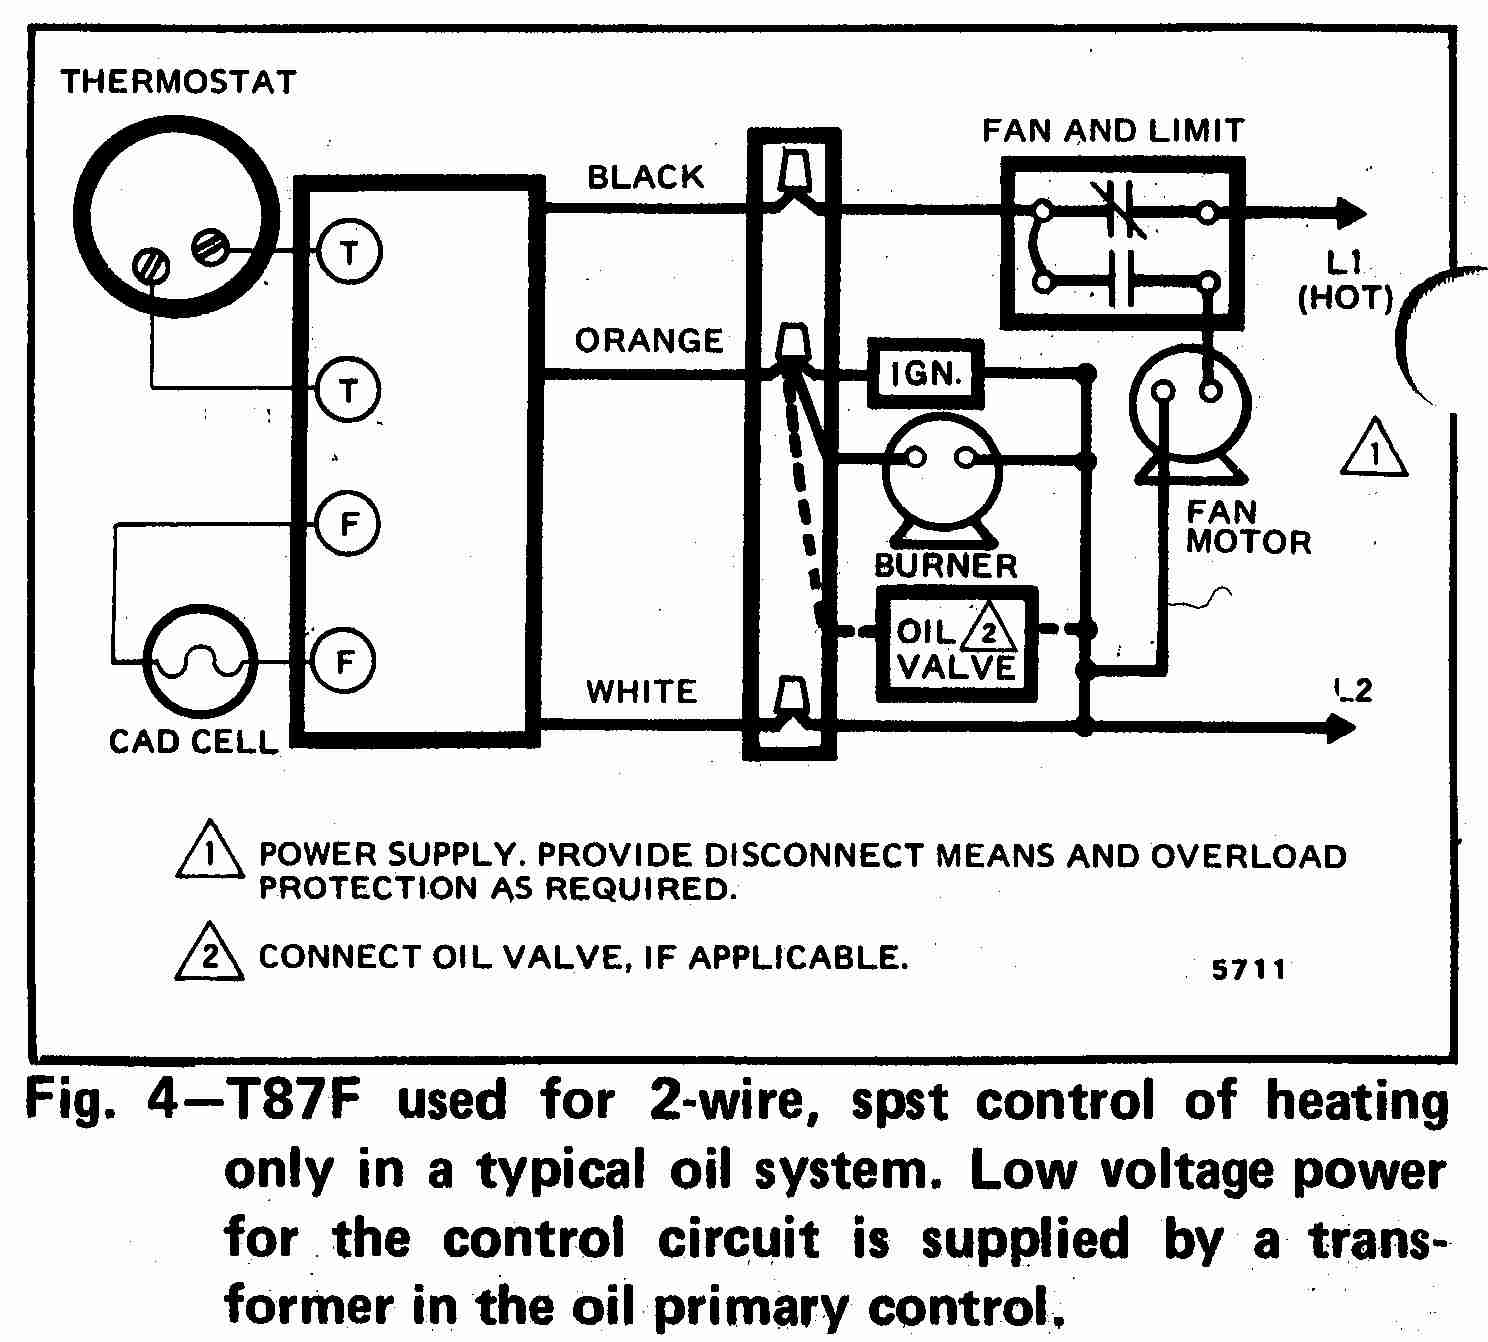 Chromalox thermostat wiring diagrams for HVAC systems Chromalox  installation instructionsInspectAPedia.com